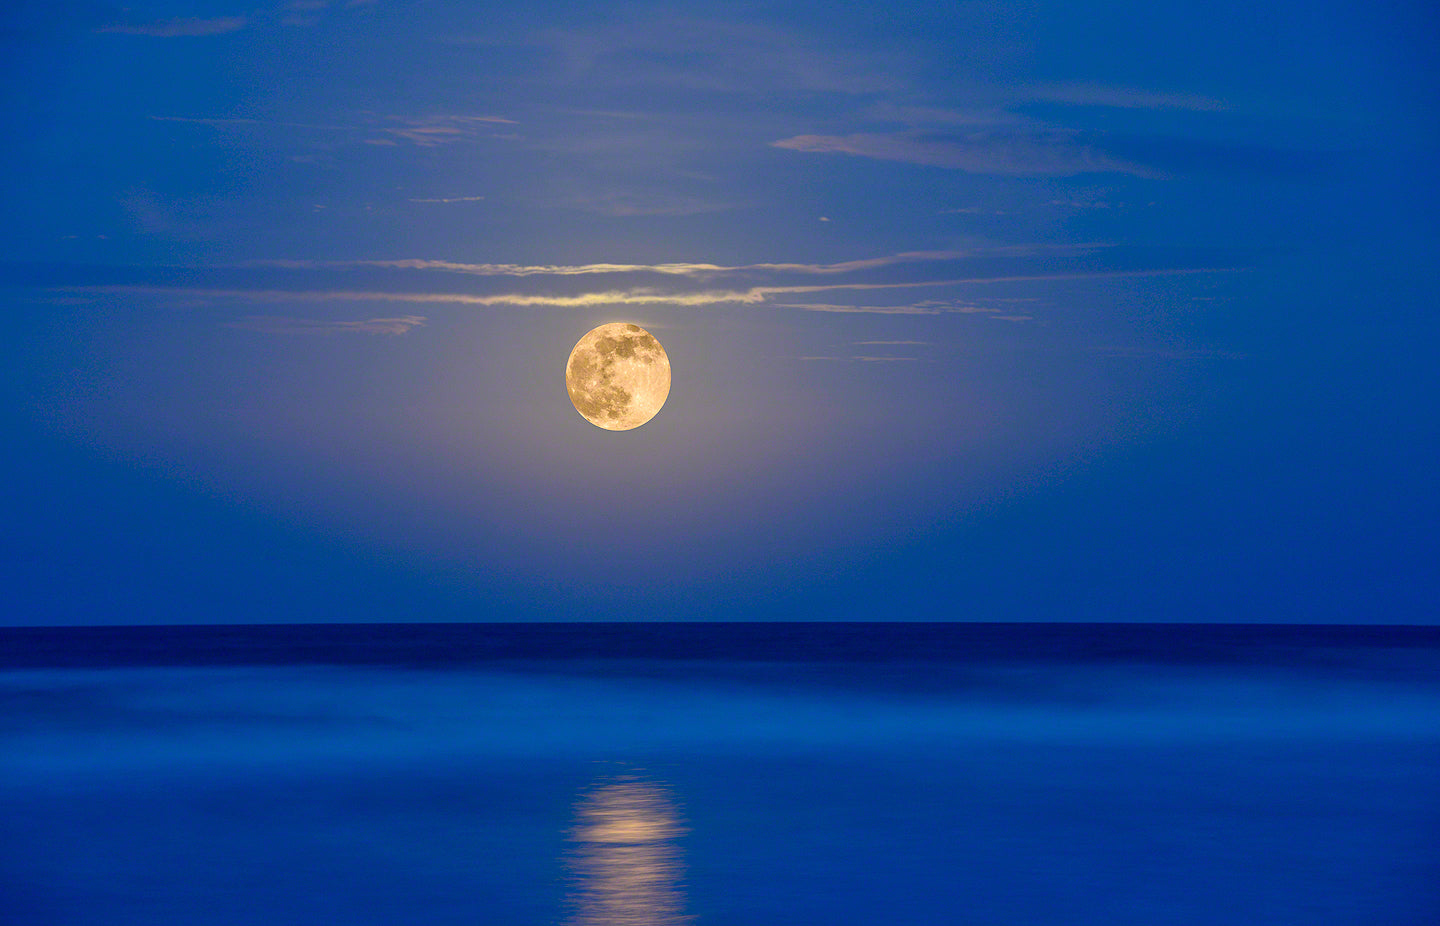 A photo of a super moon rising out of the ocean